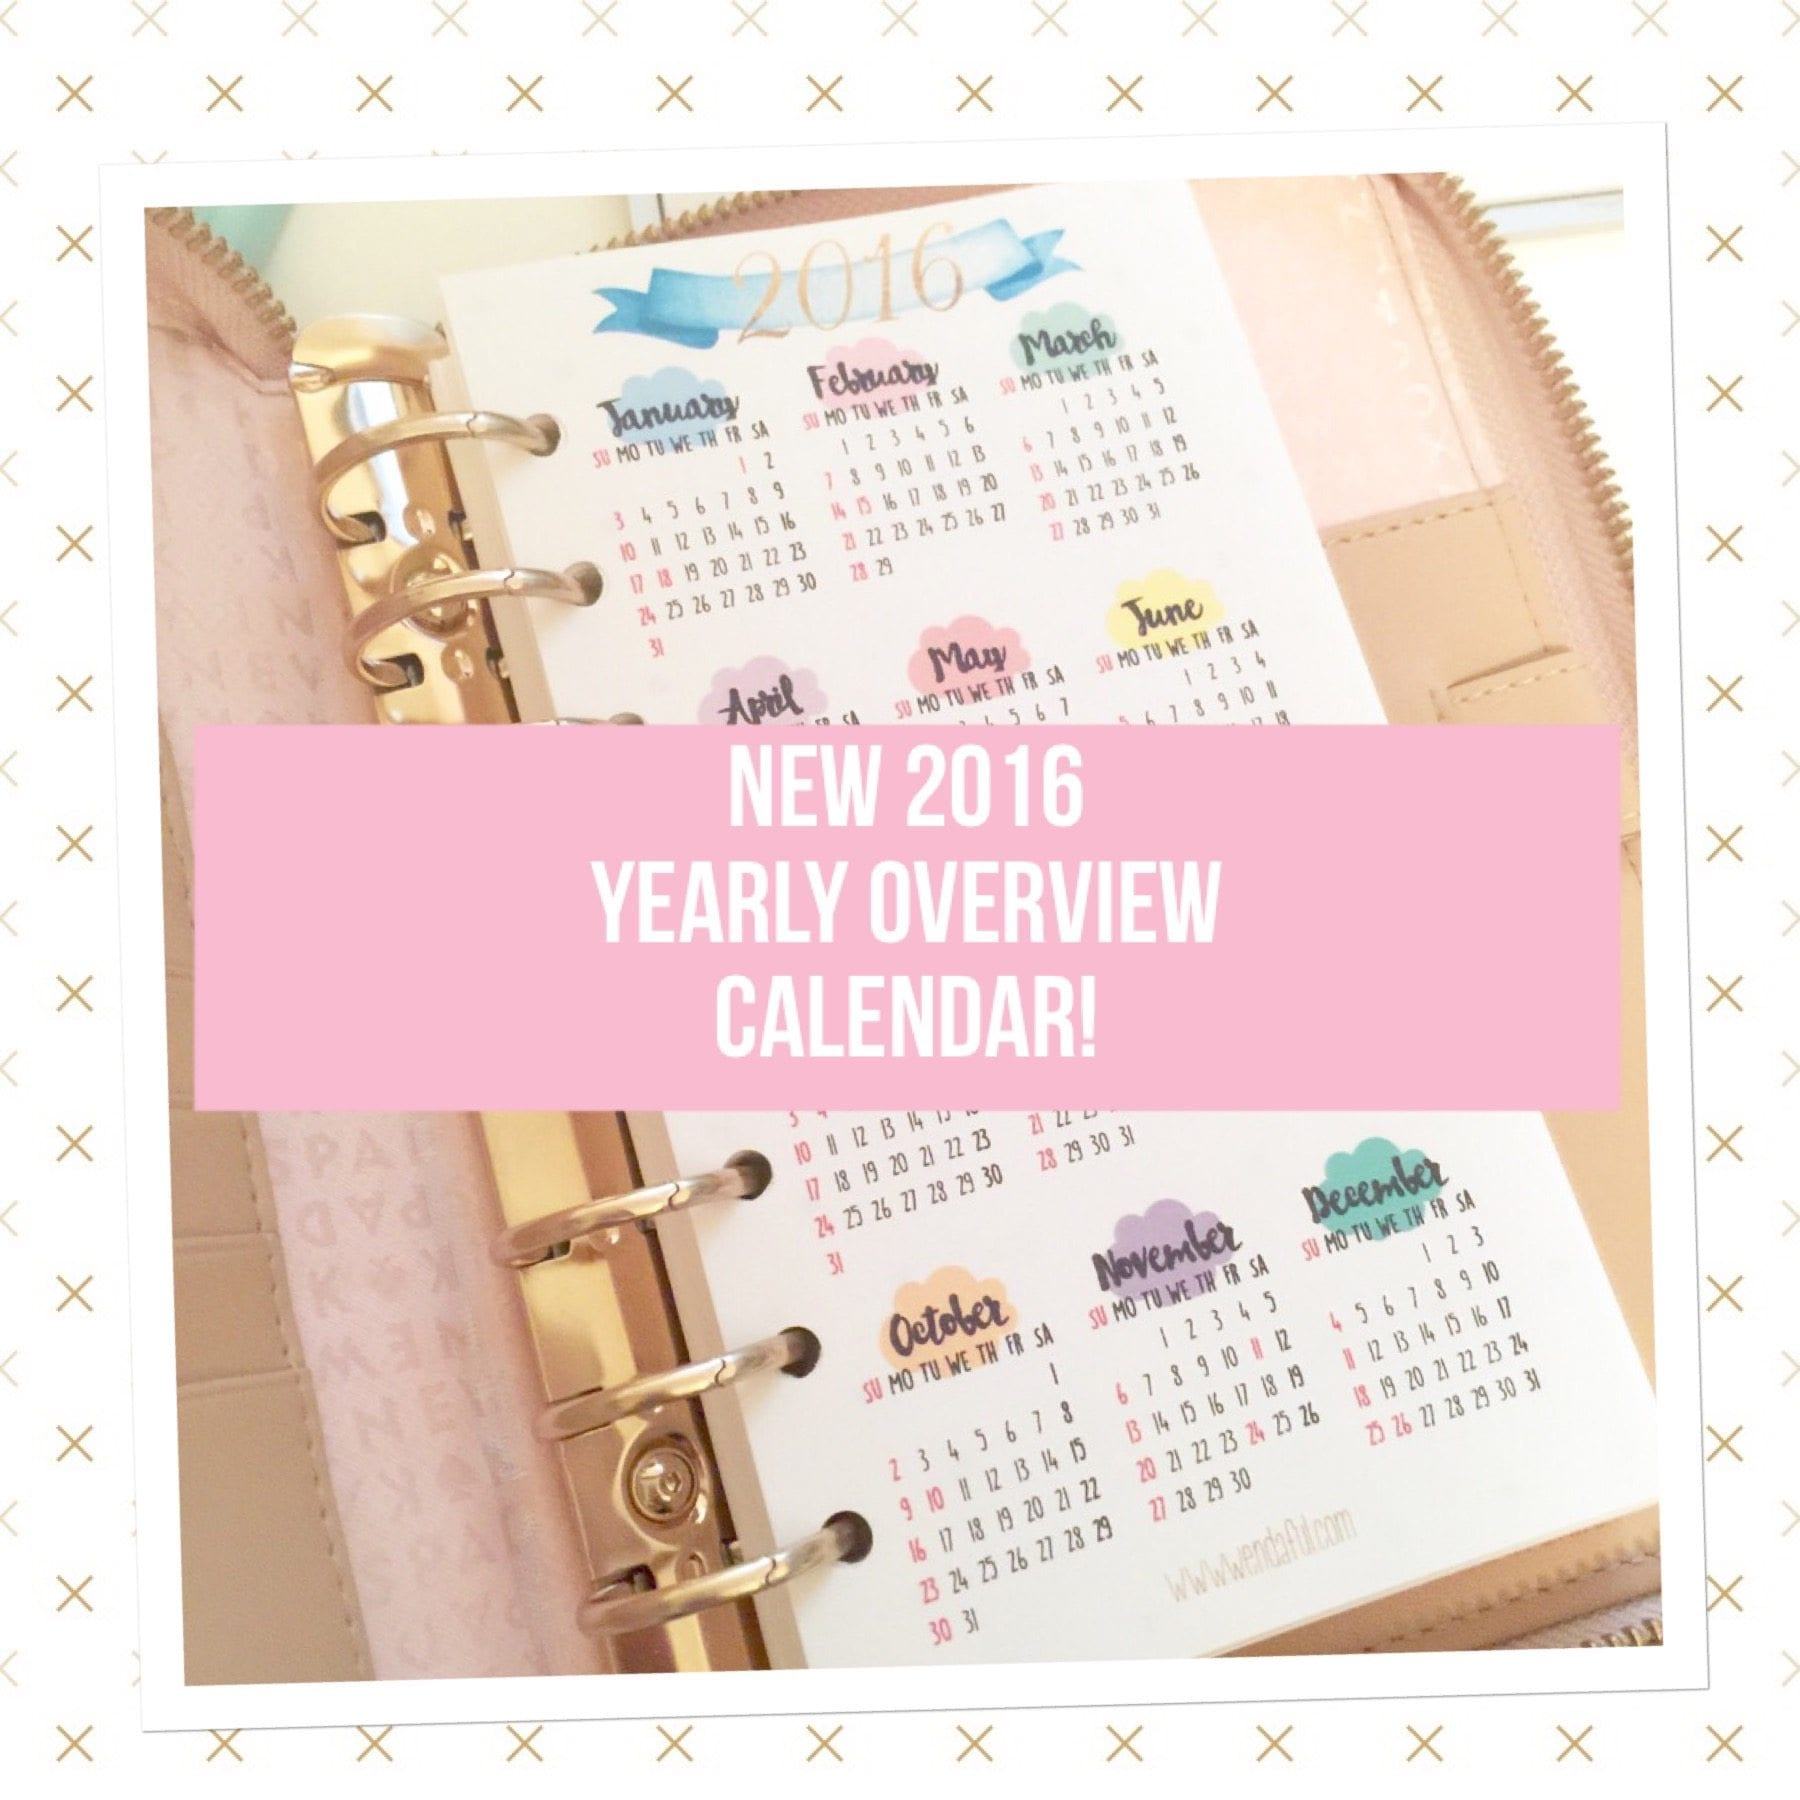 Year Calendar Overview : Free planner printable yearly overview calendar